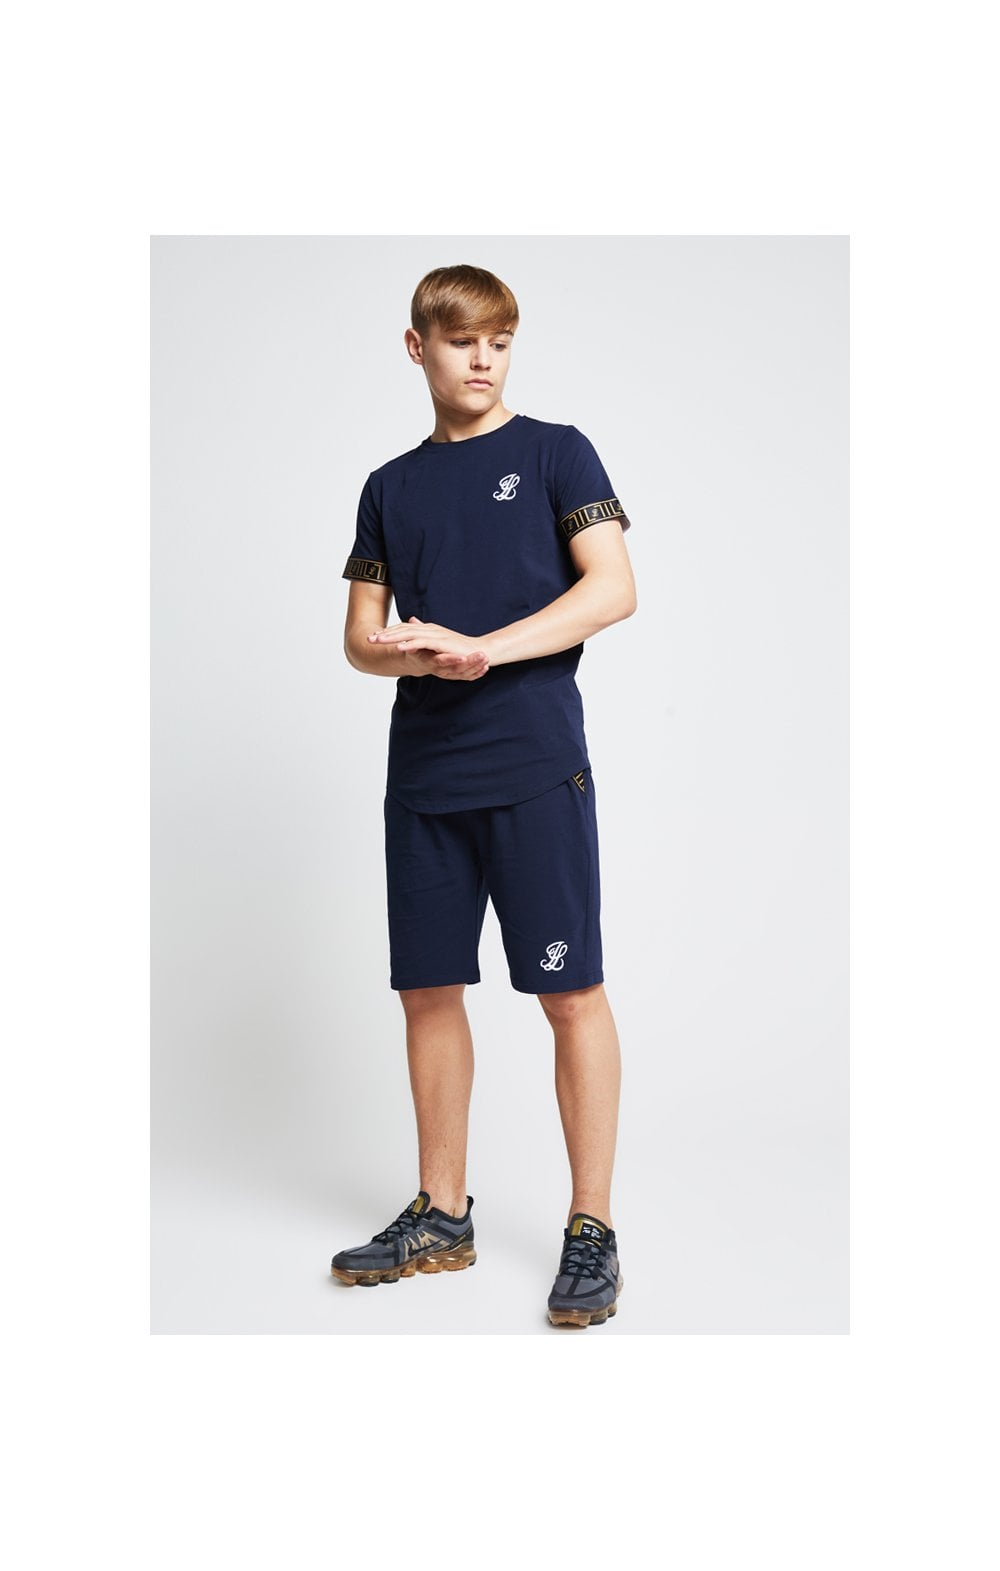 Illusive London Tape Jersey Shorts - Navy (2)